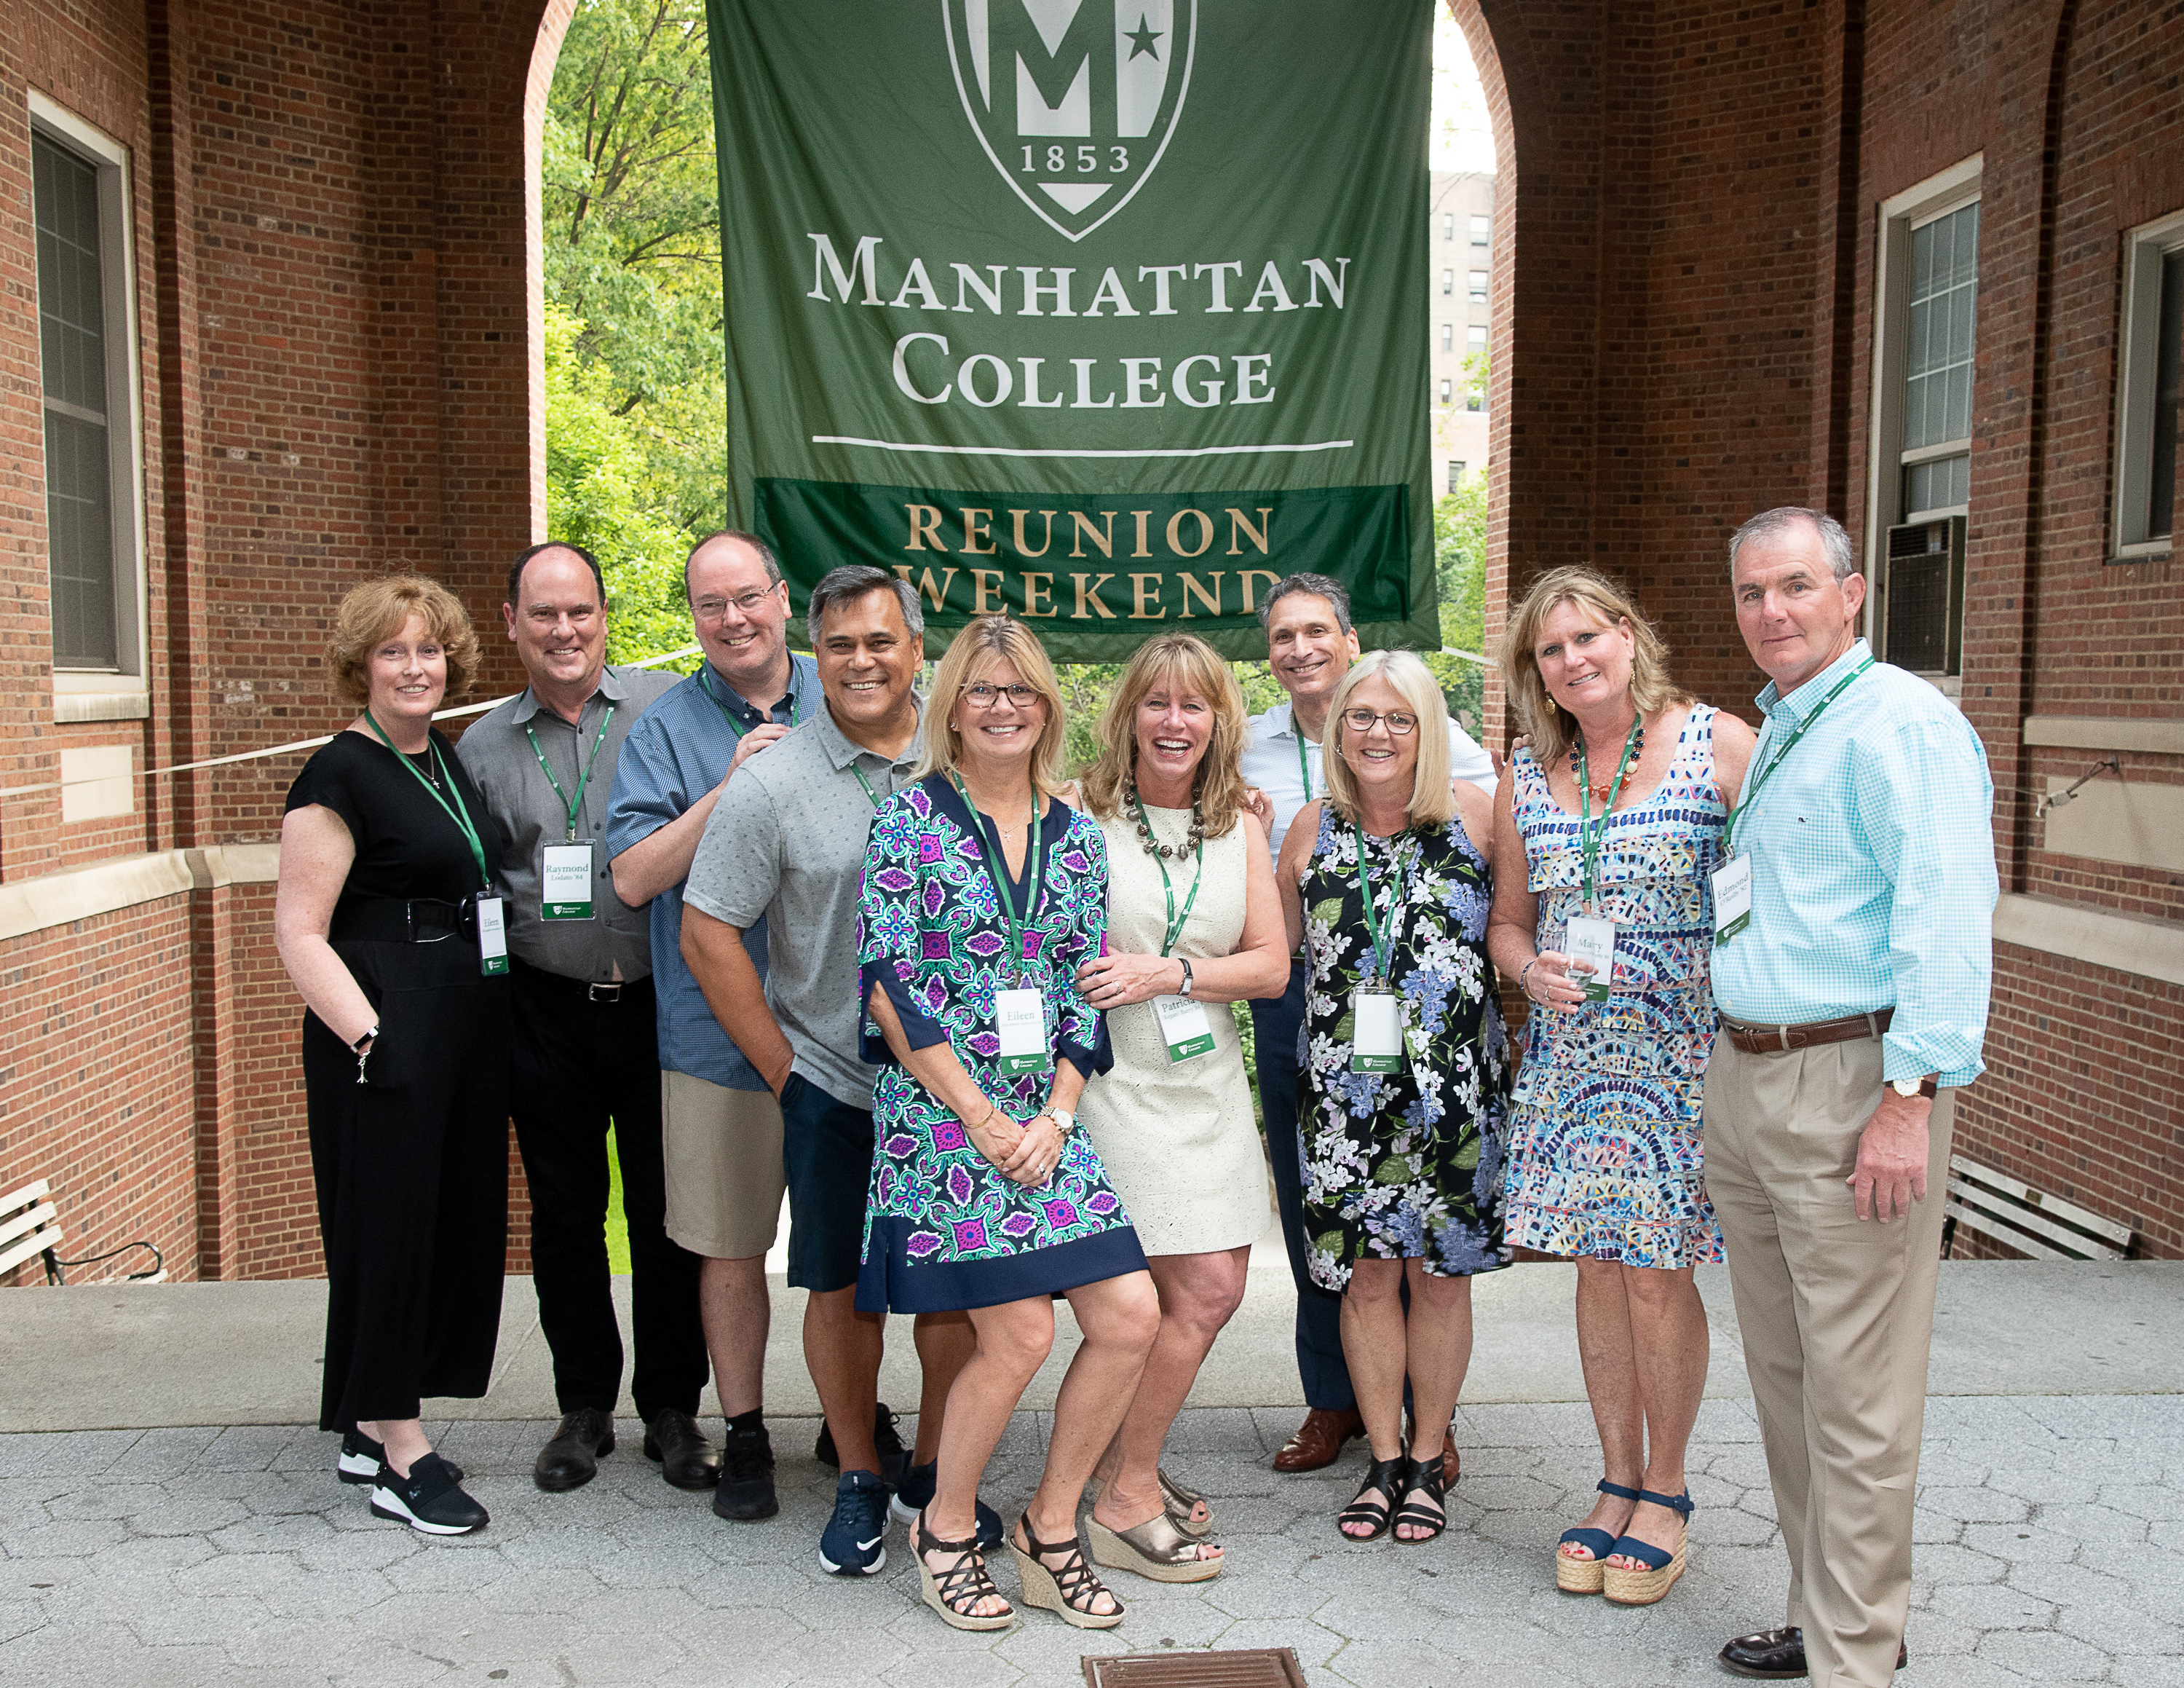 Friends and family join together at reunion weekend 2019.